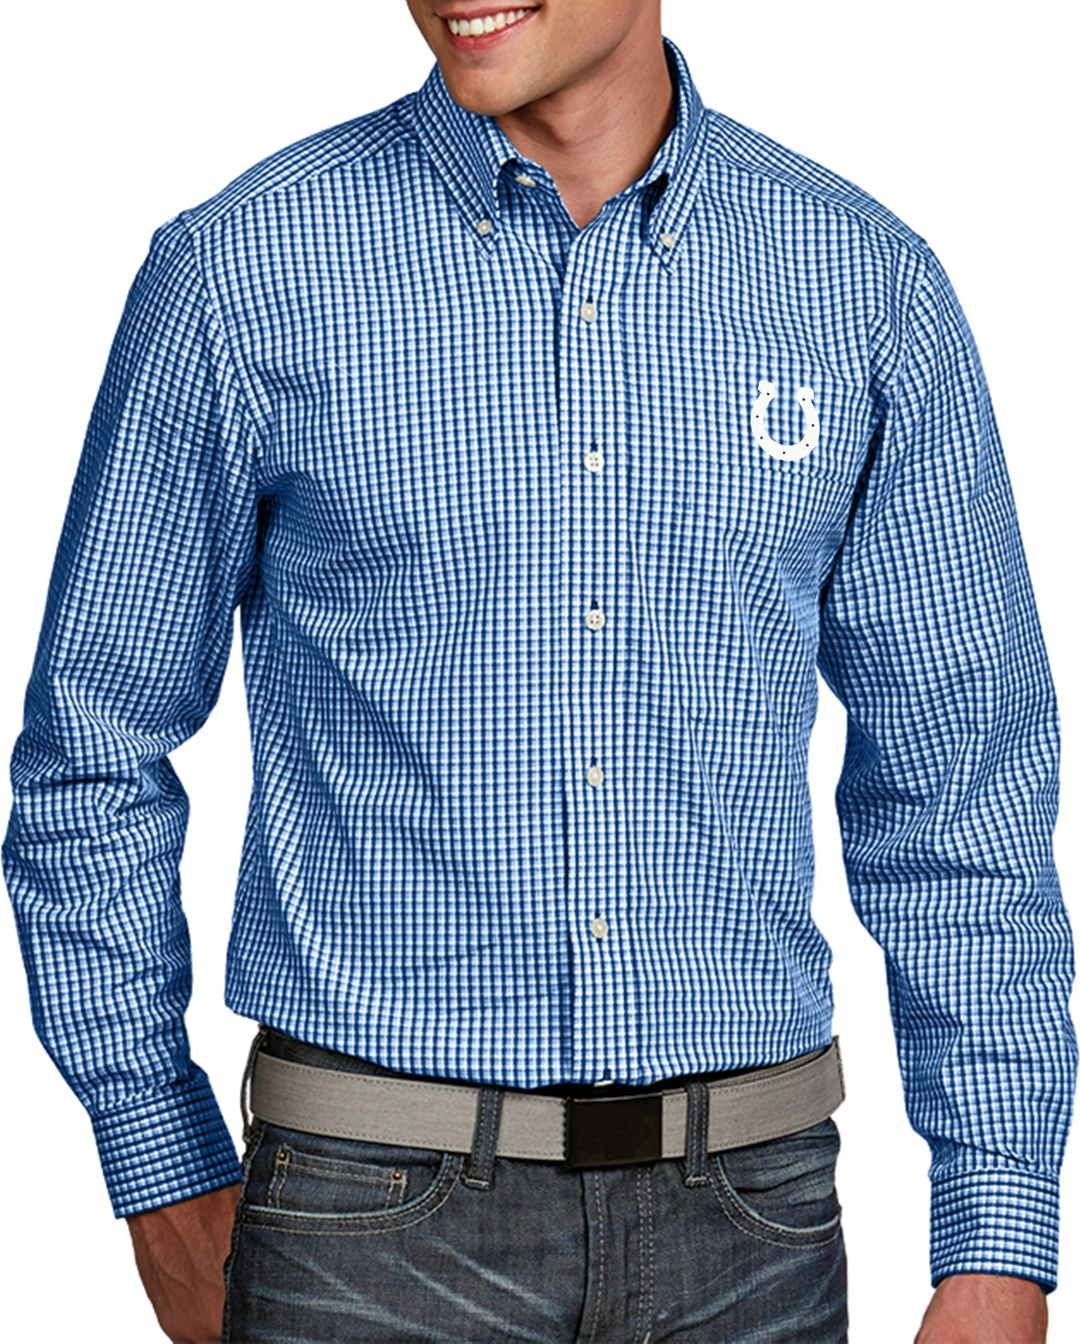 new style 38bc4 e1955 Antigua Men's Indianapolis Colts Associate Button Down Dress Shirt